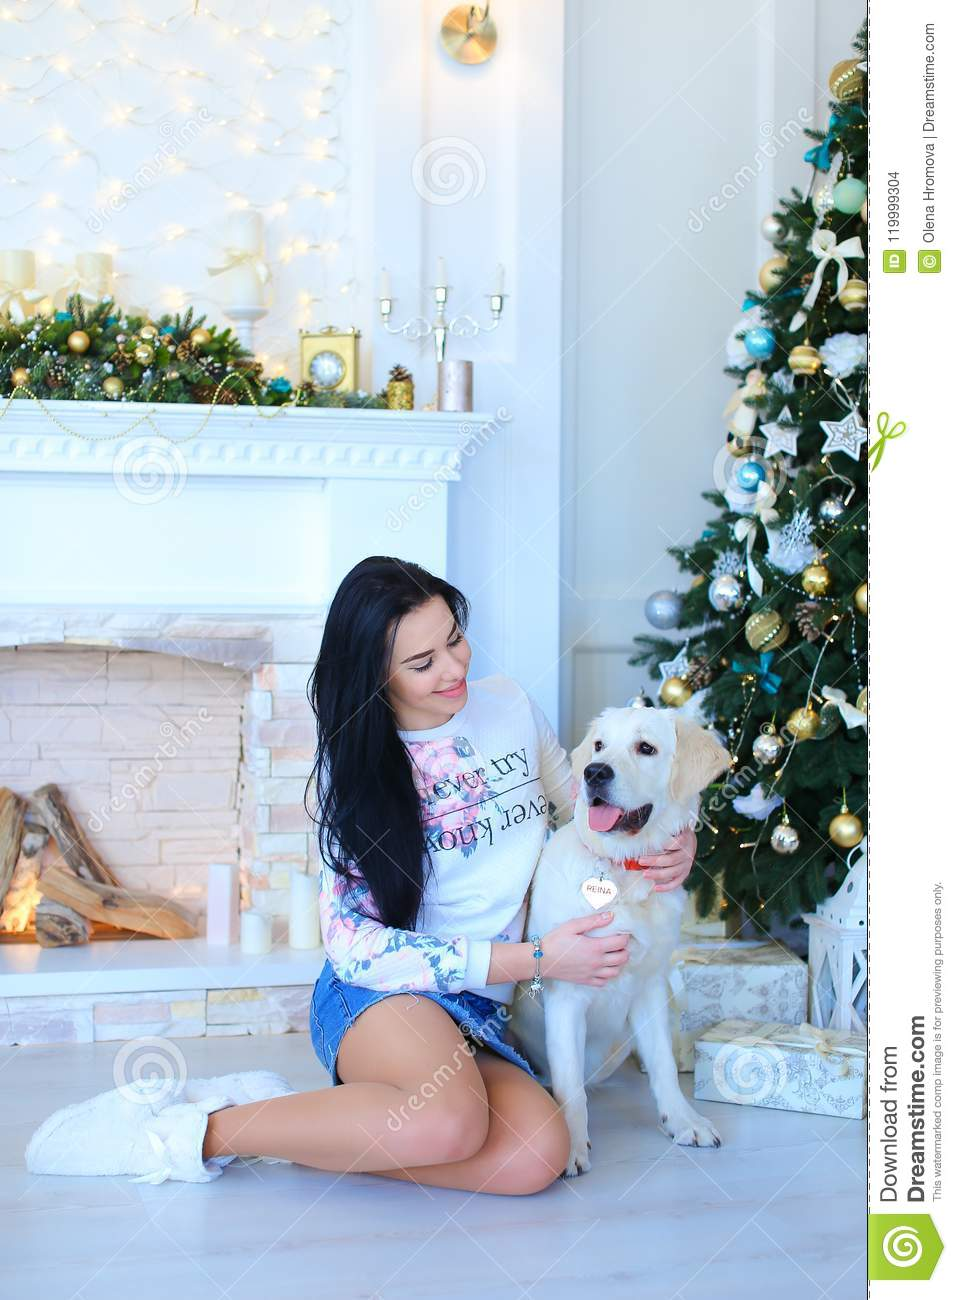 Girl sitting with white labrador near decorated fireplace and Christmas tree.